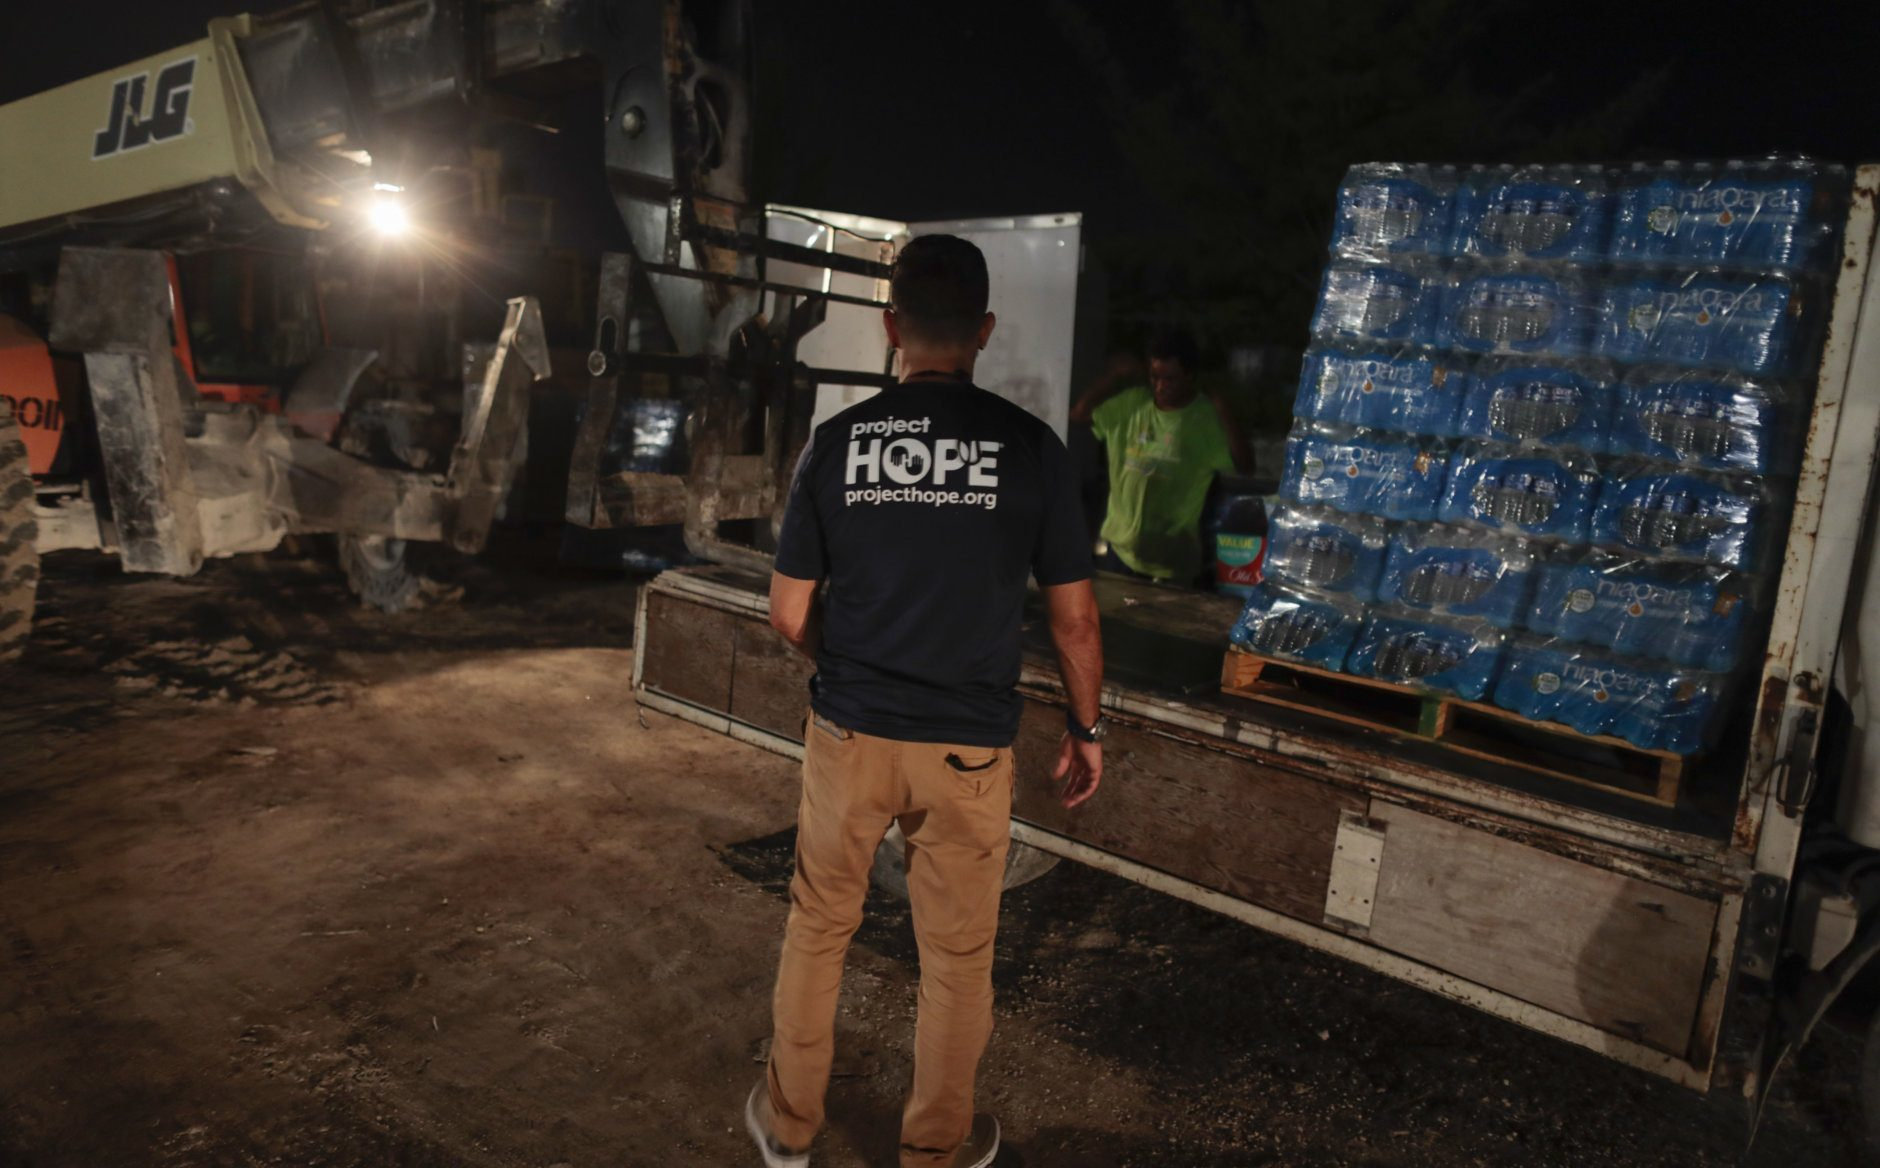 Gustavo Pagan, Logistician for Project Hope,works in Bahamas, Wednesday, Sept.4, 2019. (Javier Galeano, Project Hope)